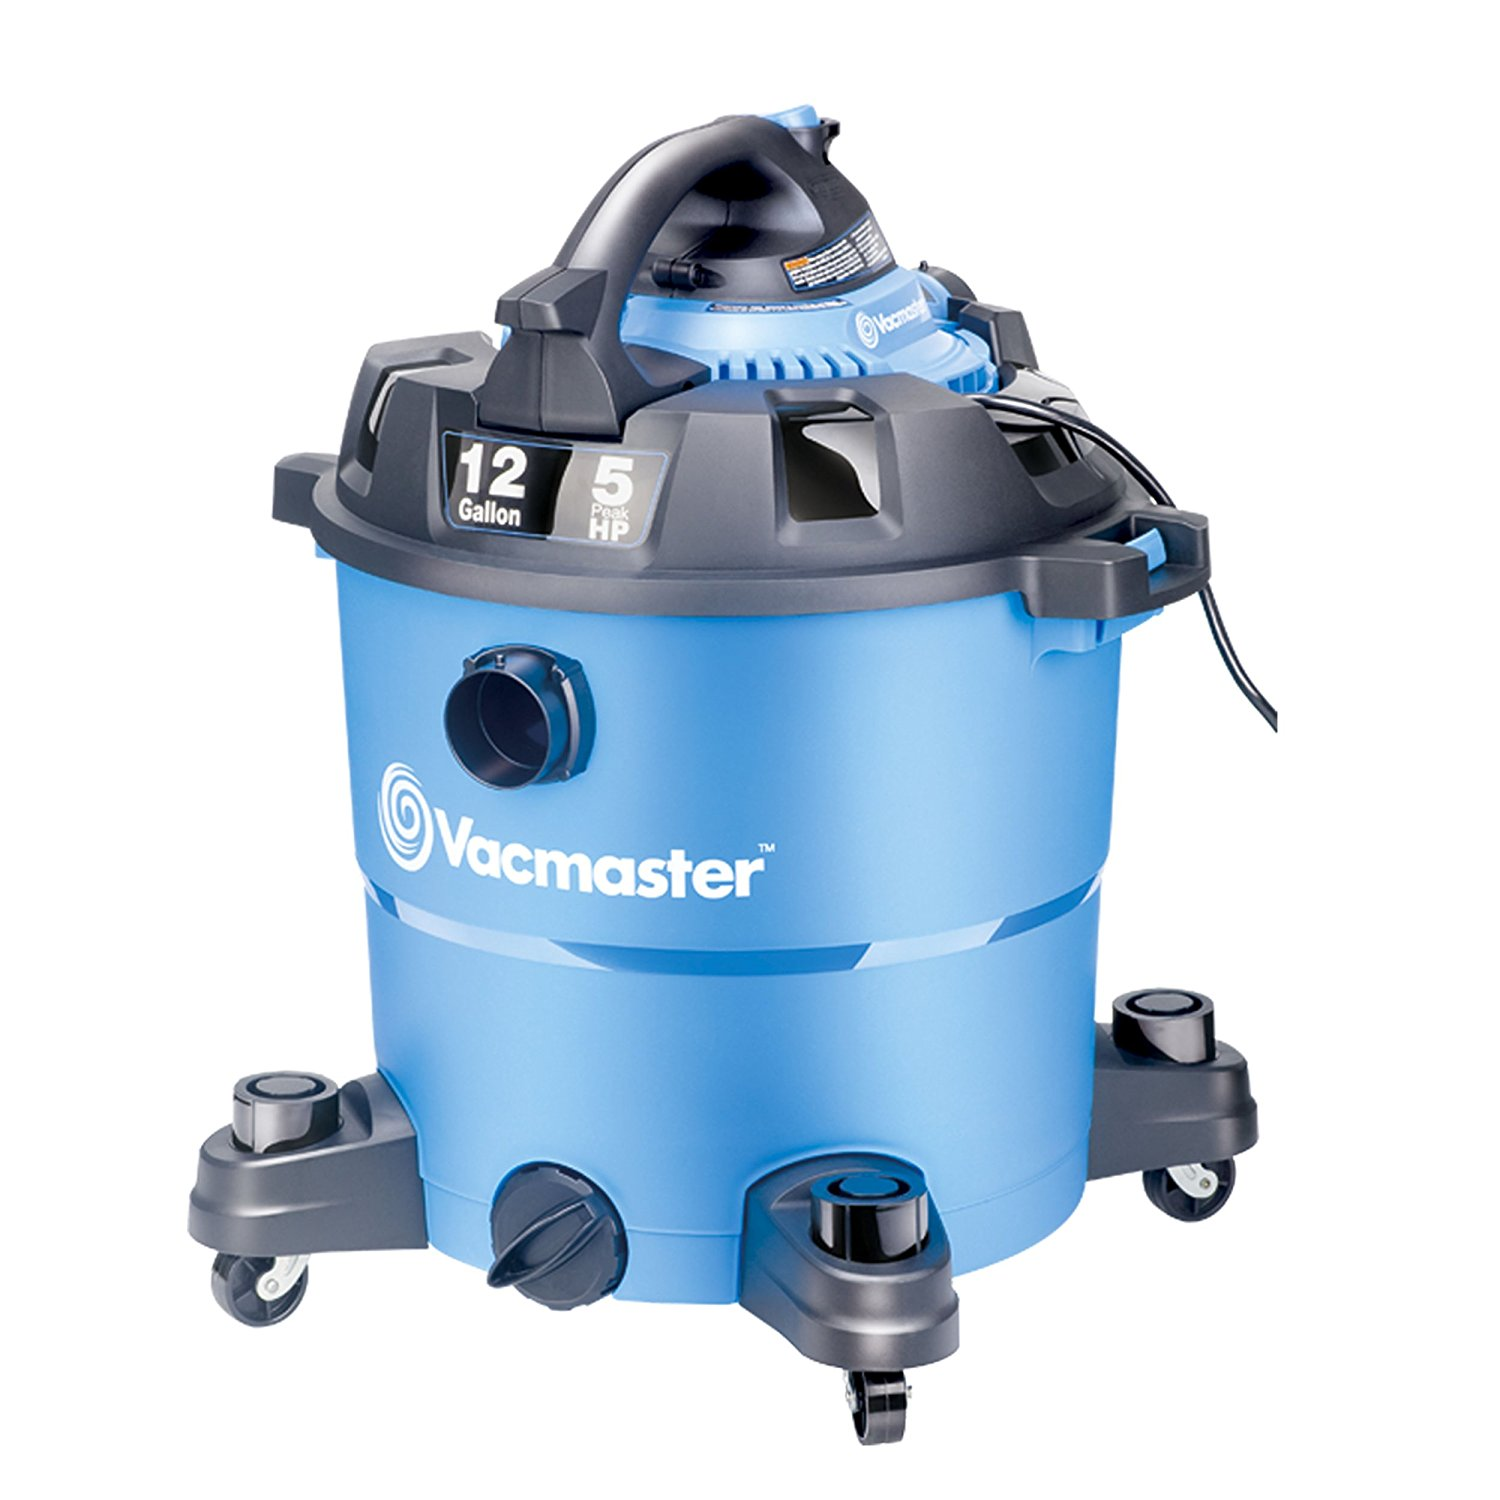 Vacmaster 12 Gallon, 5 Peak HP, Wet/Dry Vacuum with Detachable Blower